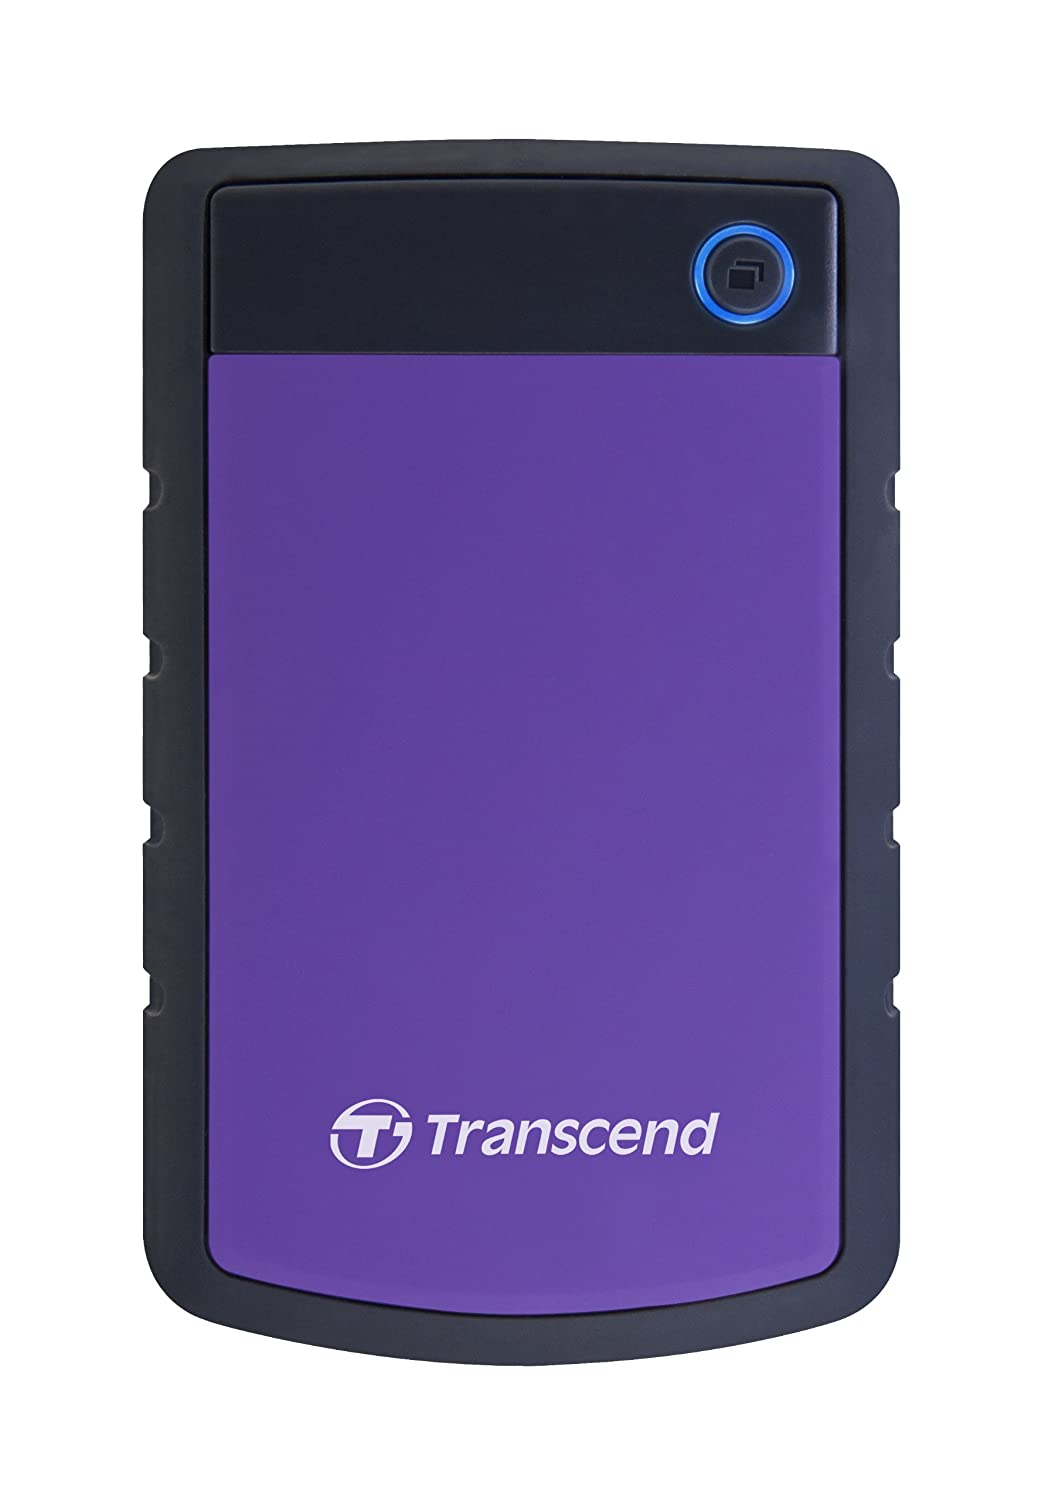 amazon Transcend USB 3.0 Festplatte 2 TB